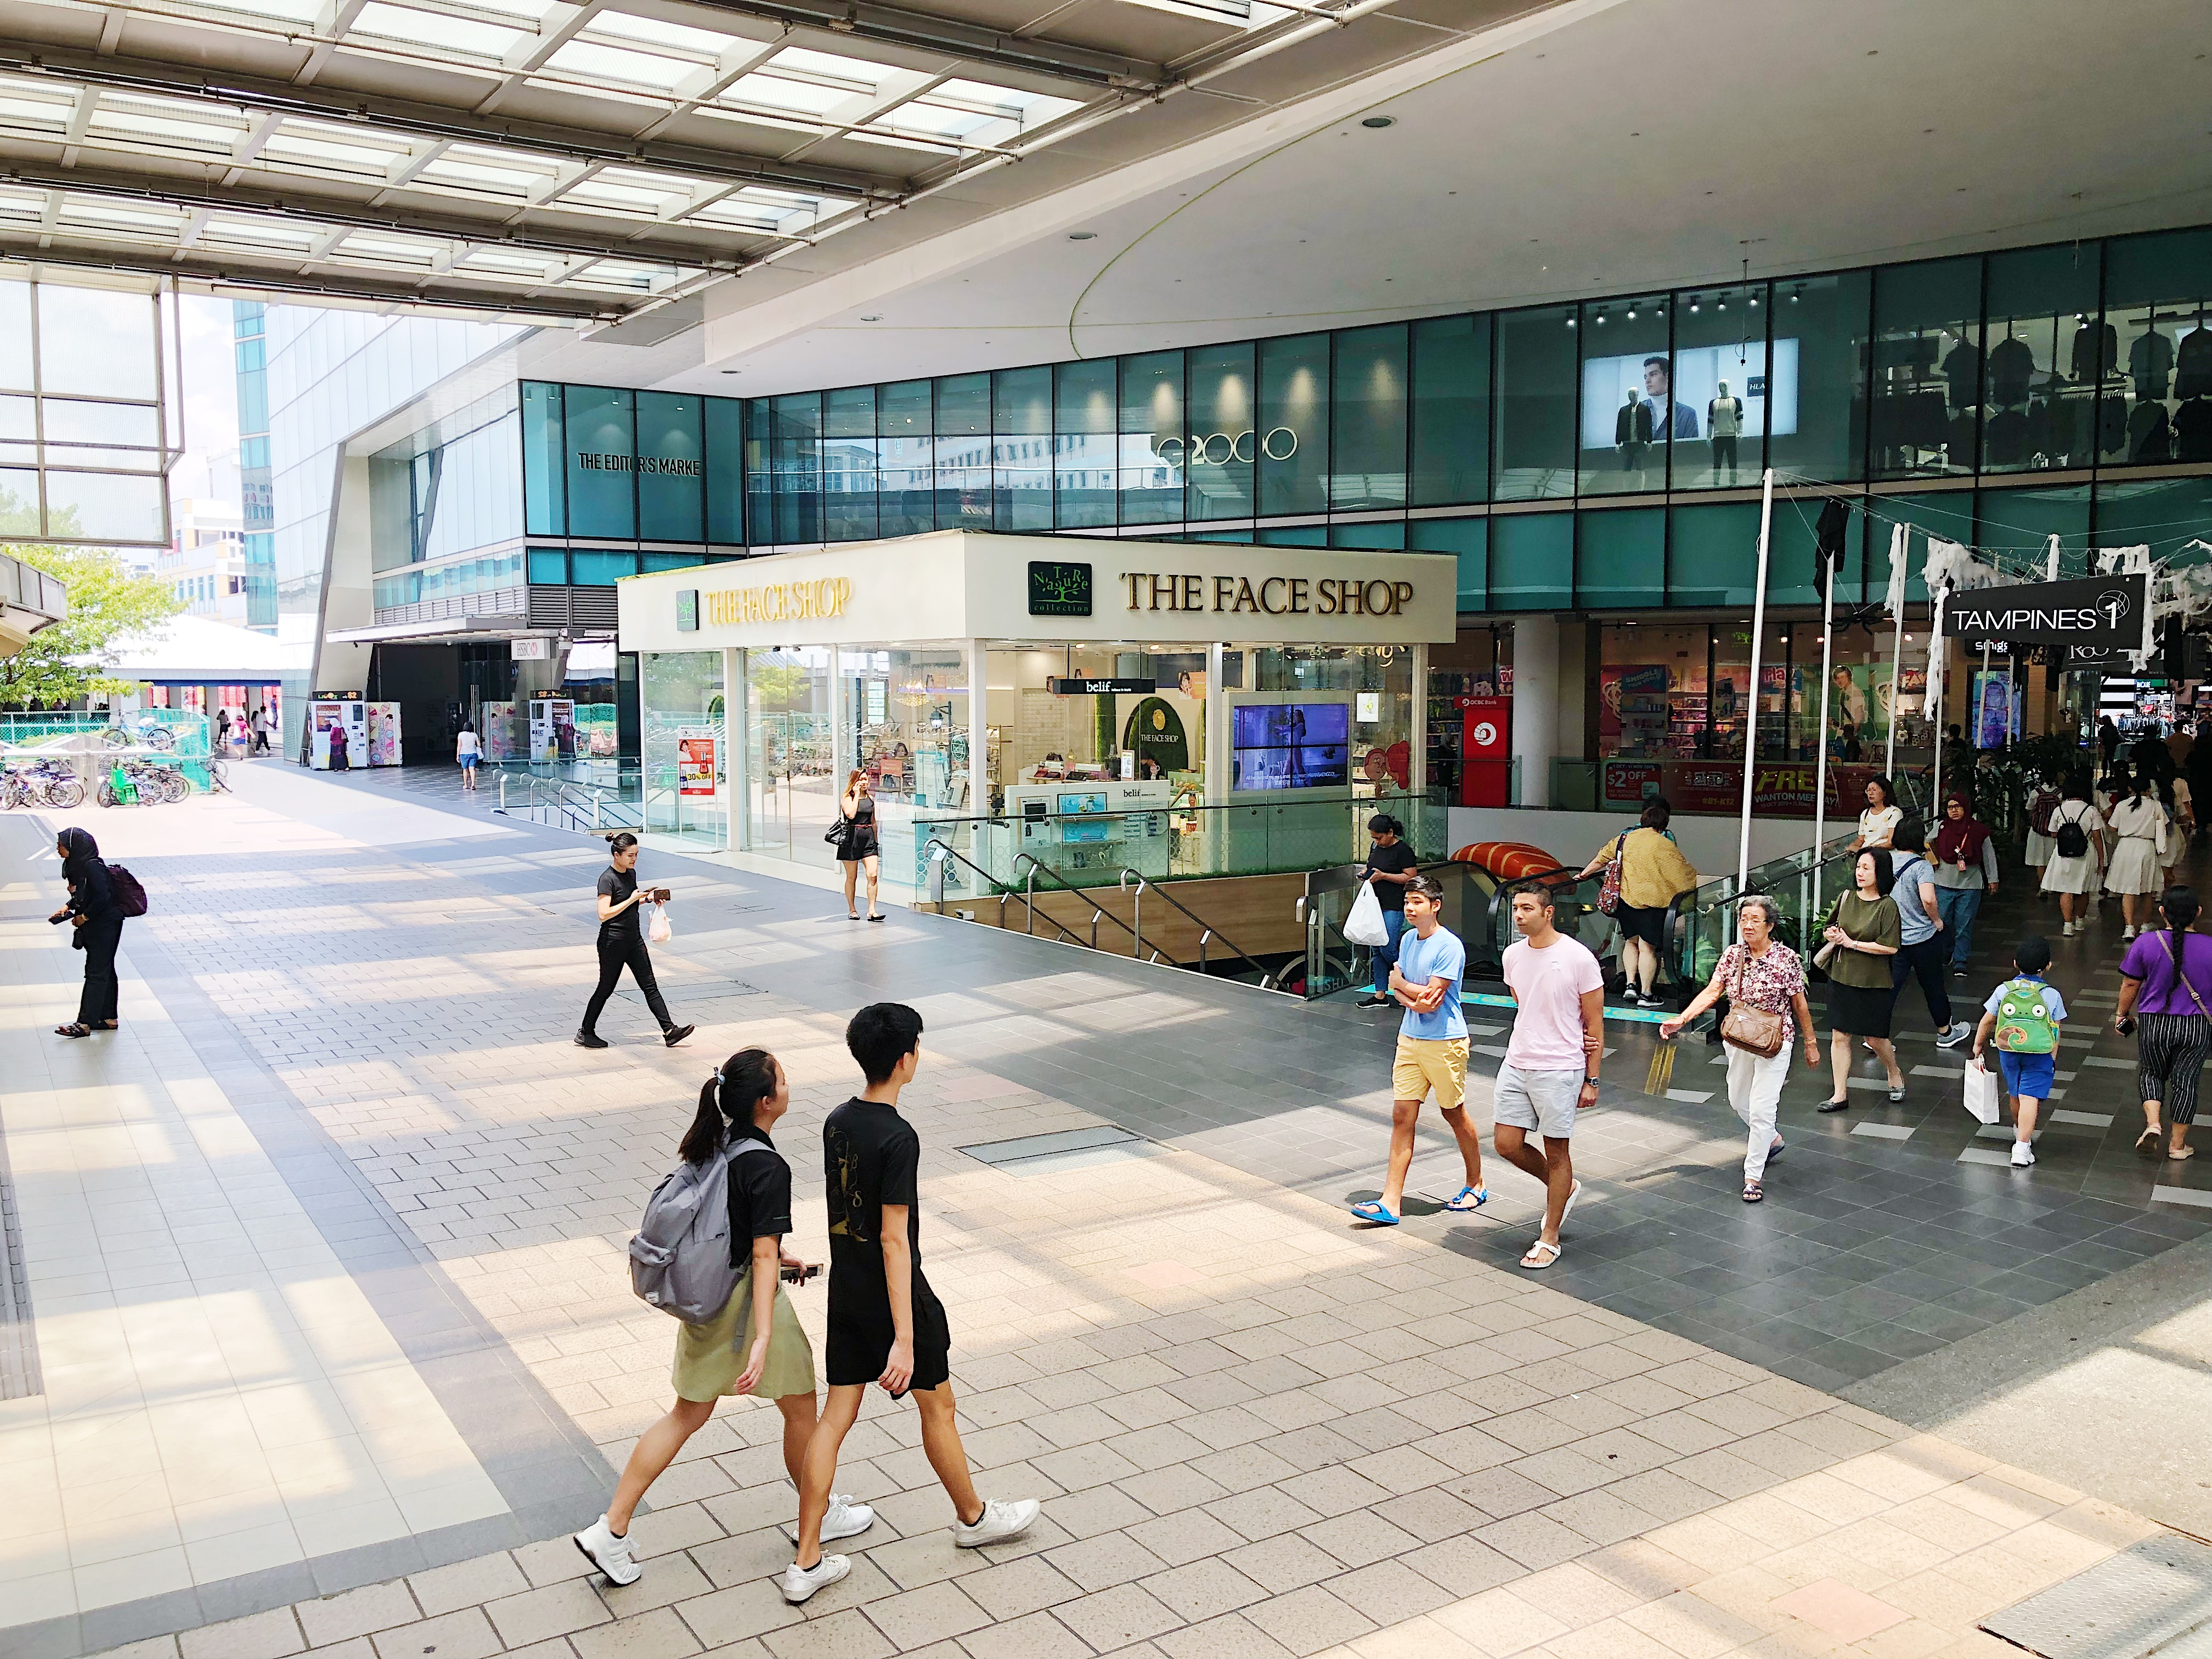 Tampines 1 Opposite MRT entrance Roadshow Space